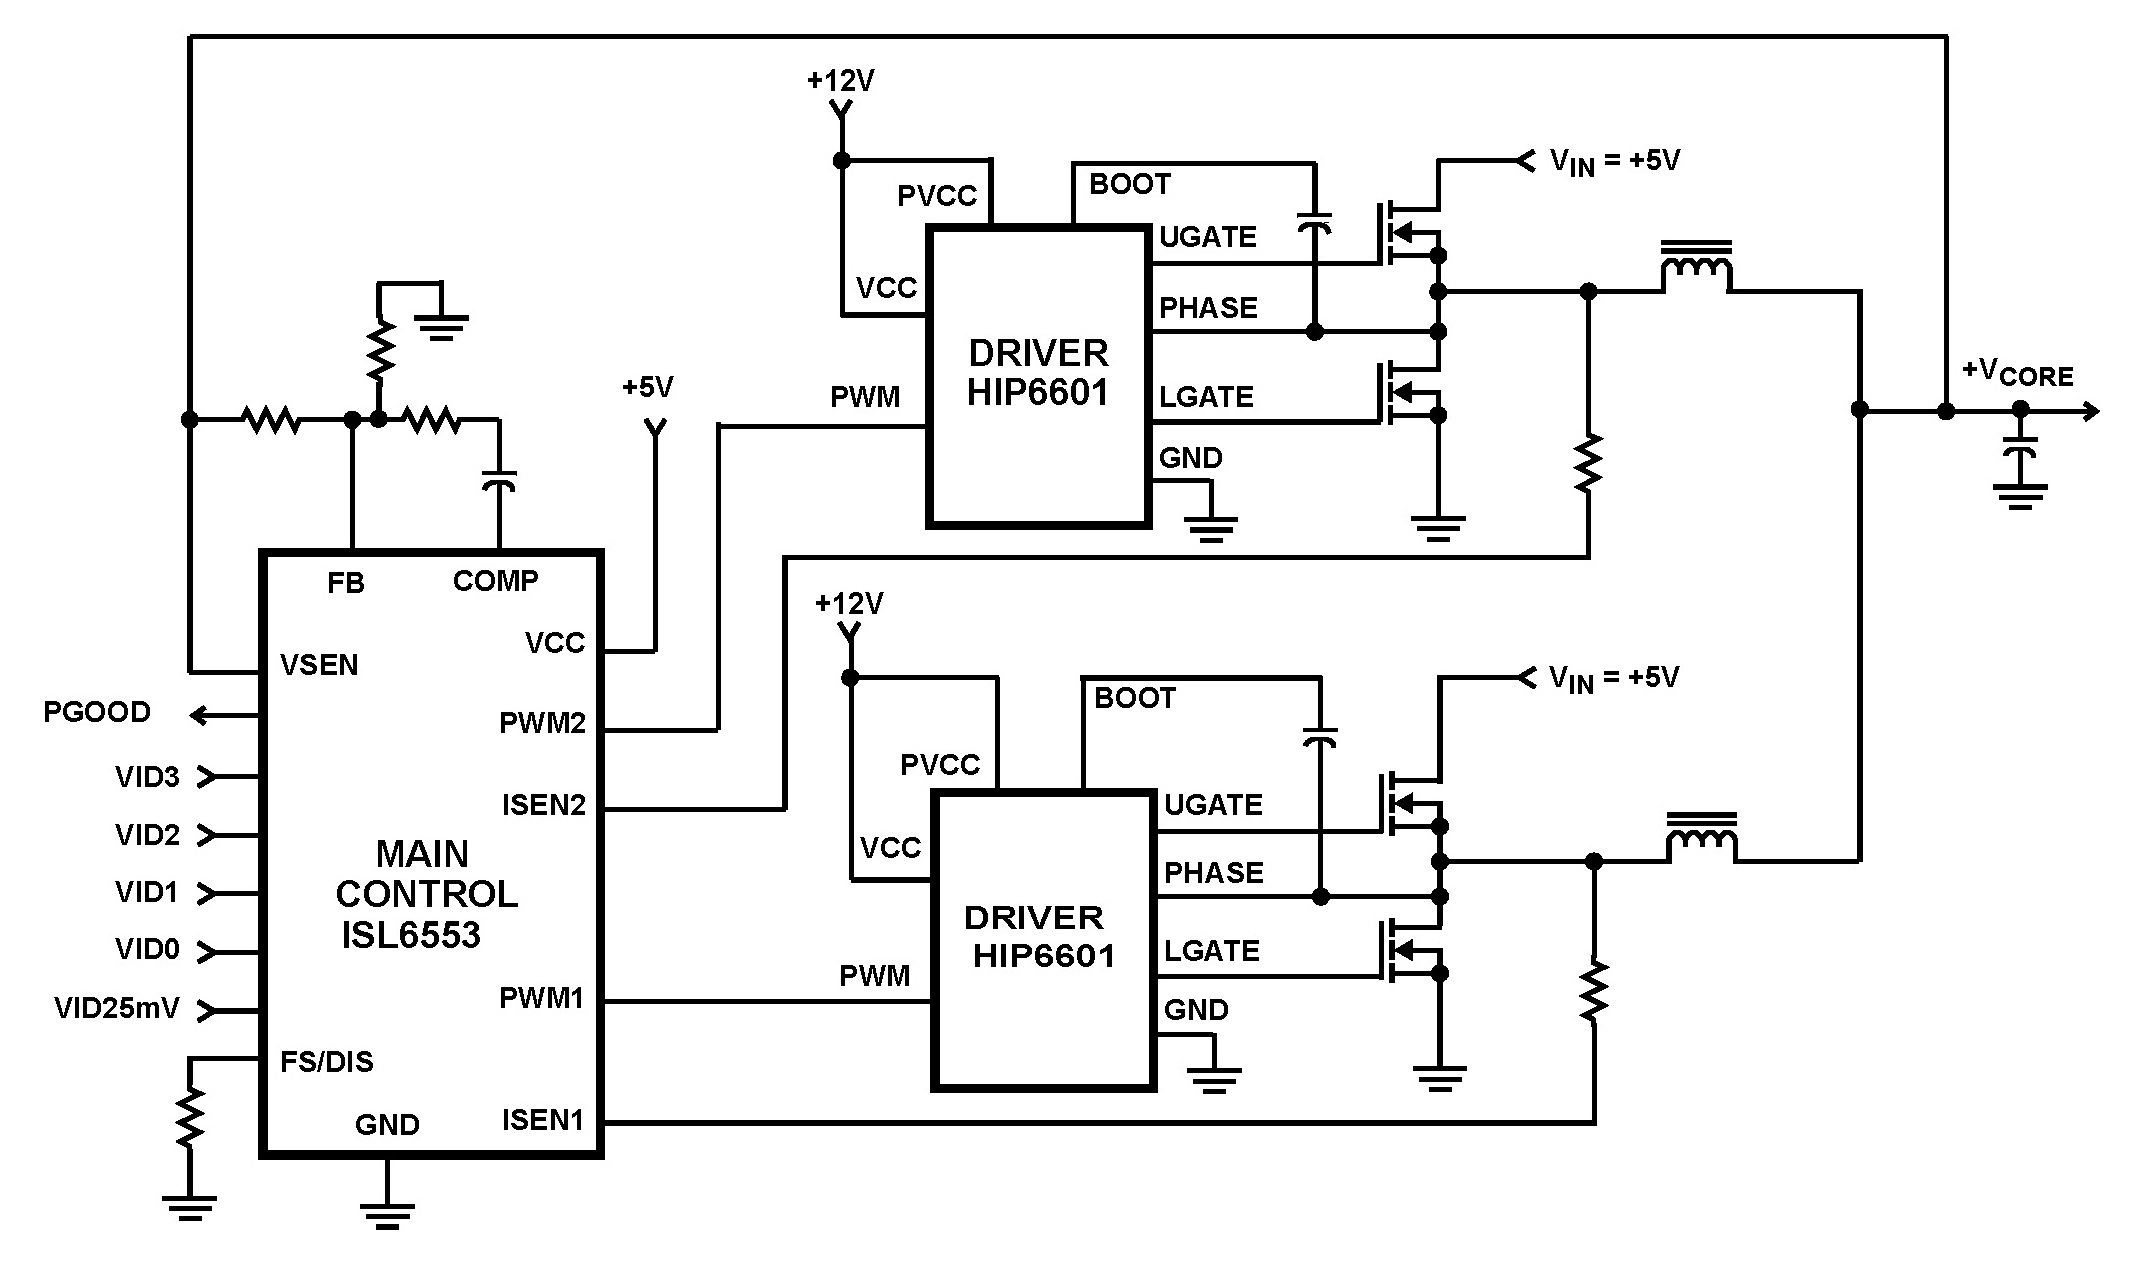 isl6553 microprocessor core voltage regulator 2 phase buck pwm controller under repository